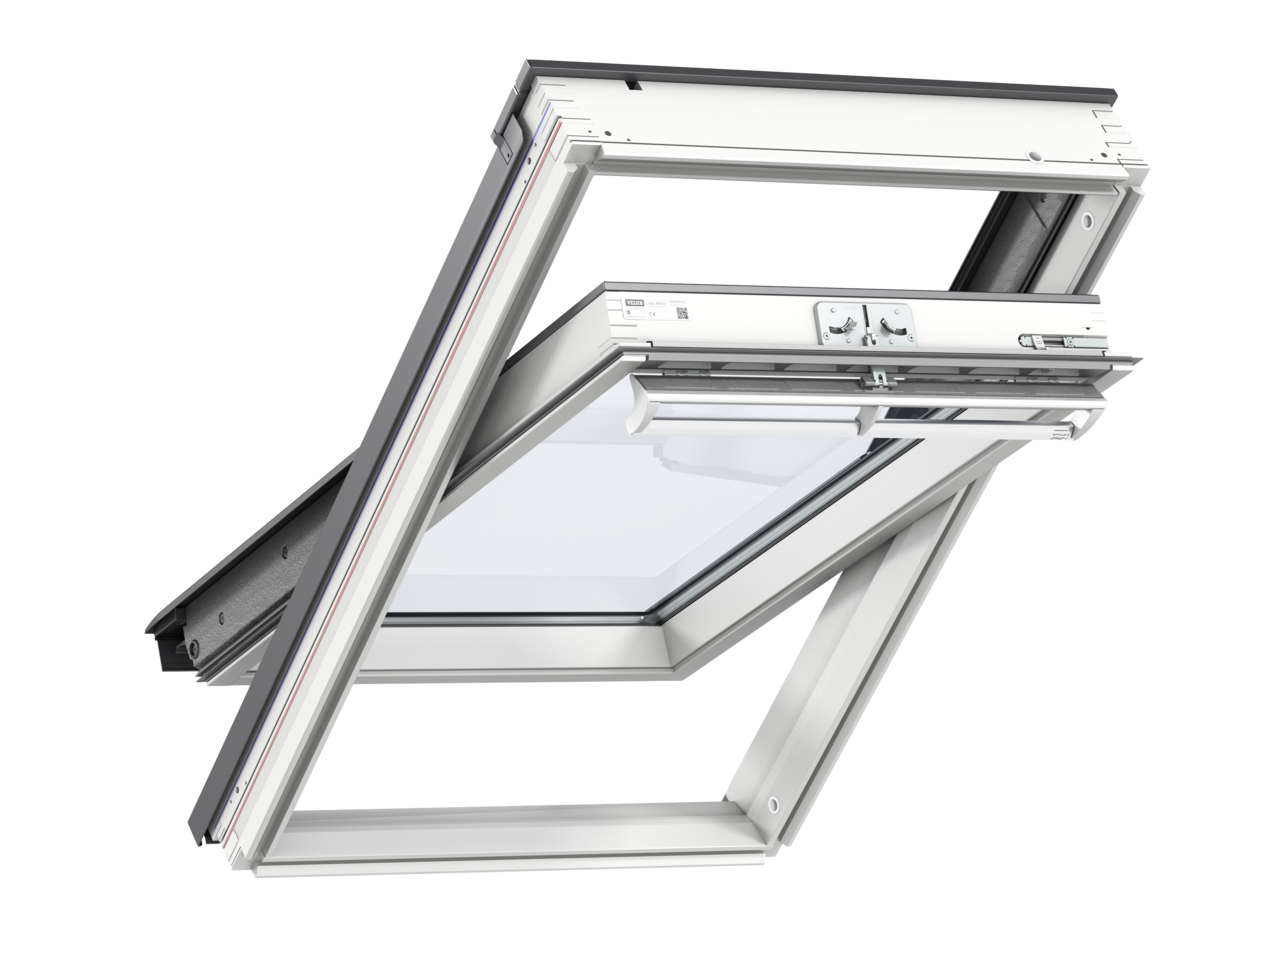 Velux GGL PK08 940 x 1400mm Centre Pivot 60Pane Roof Window - White Painted